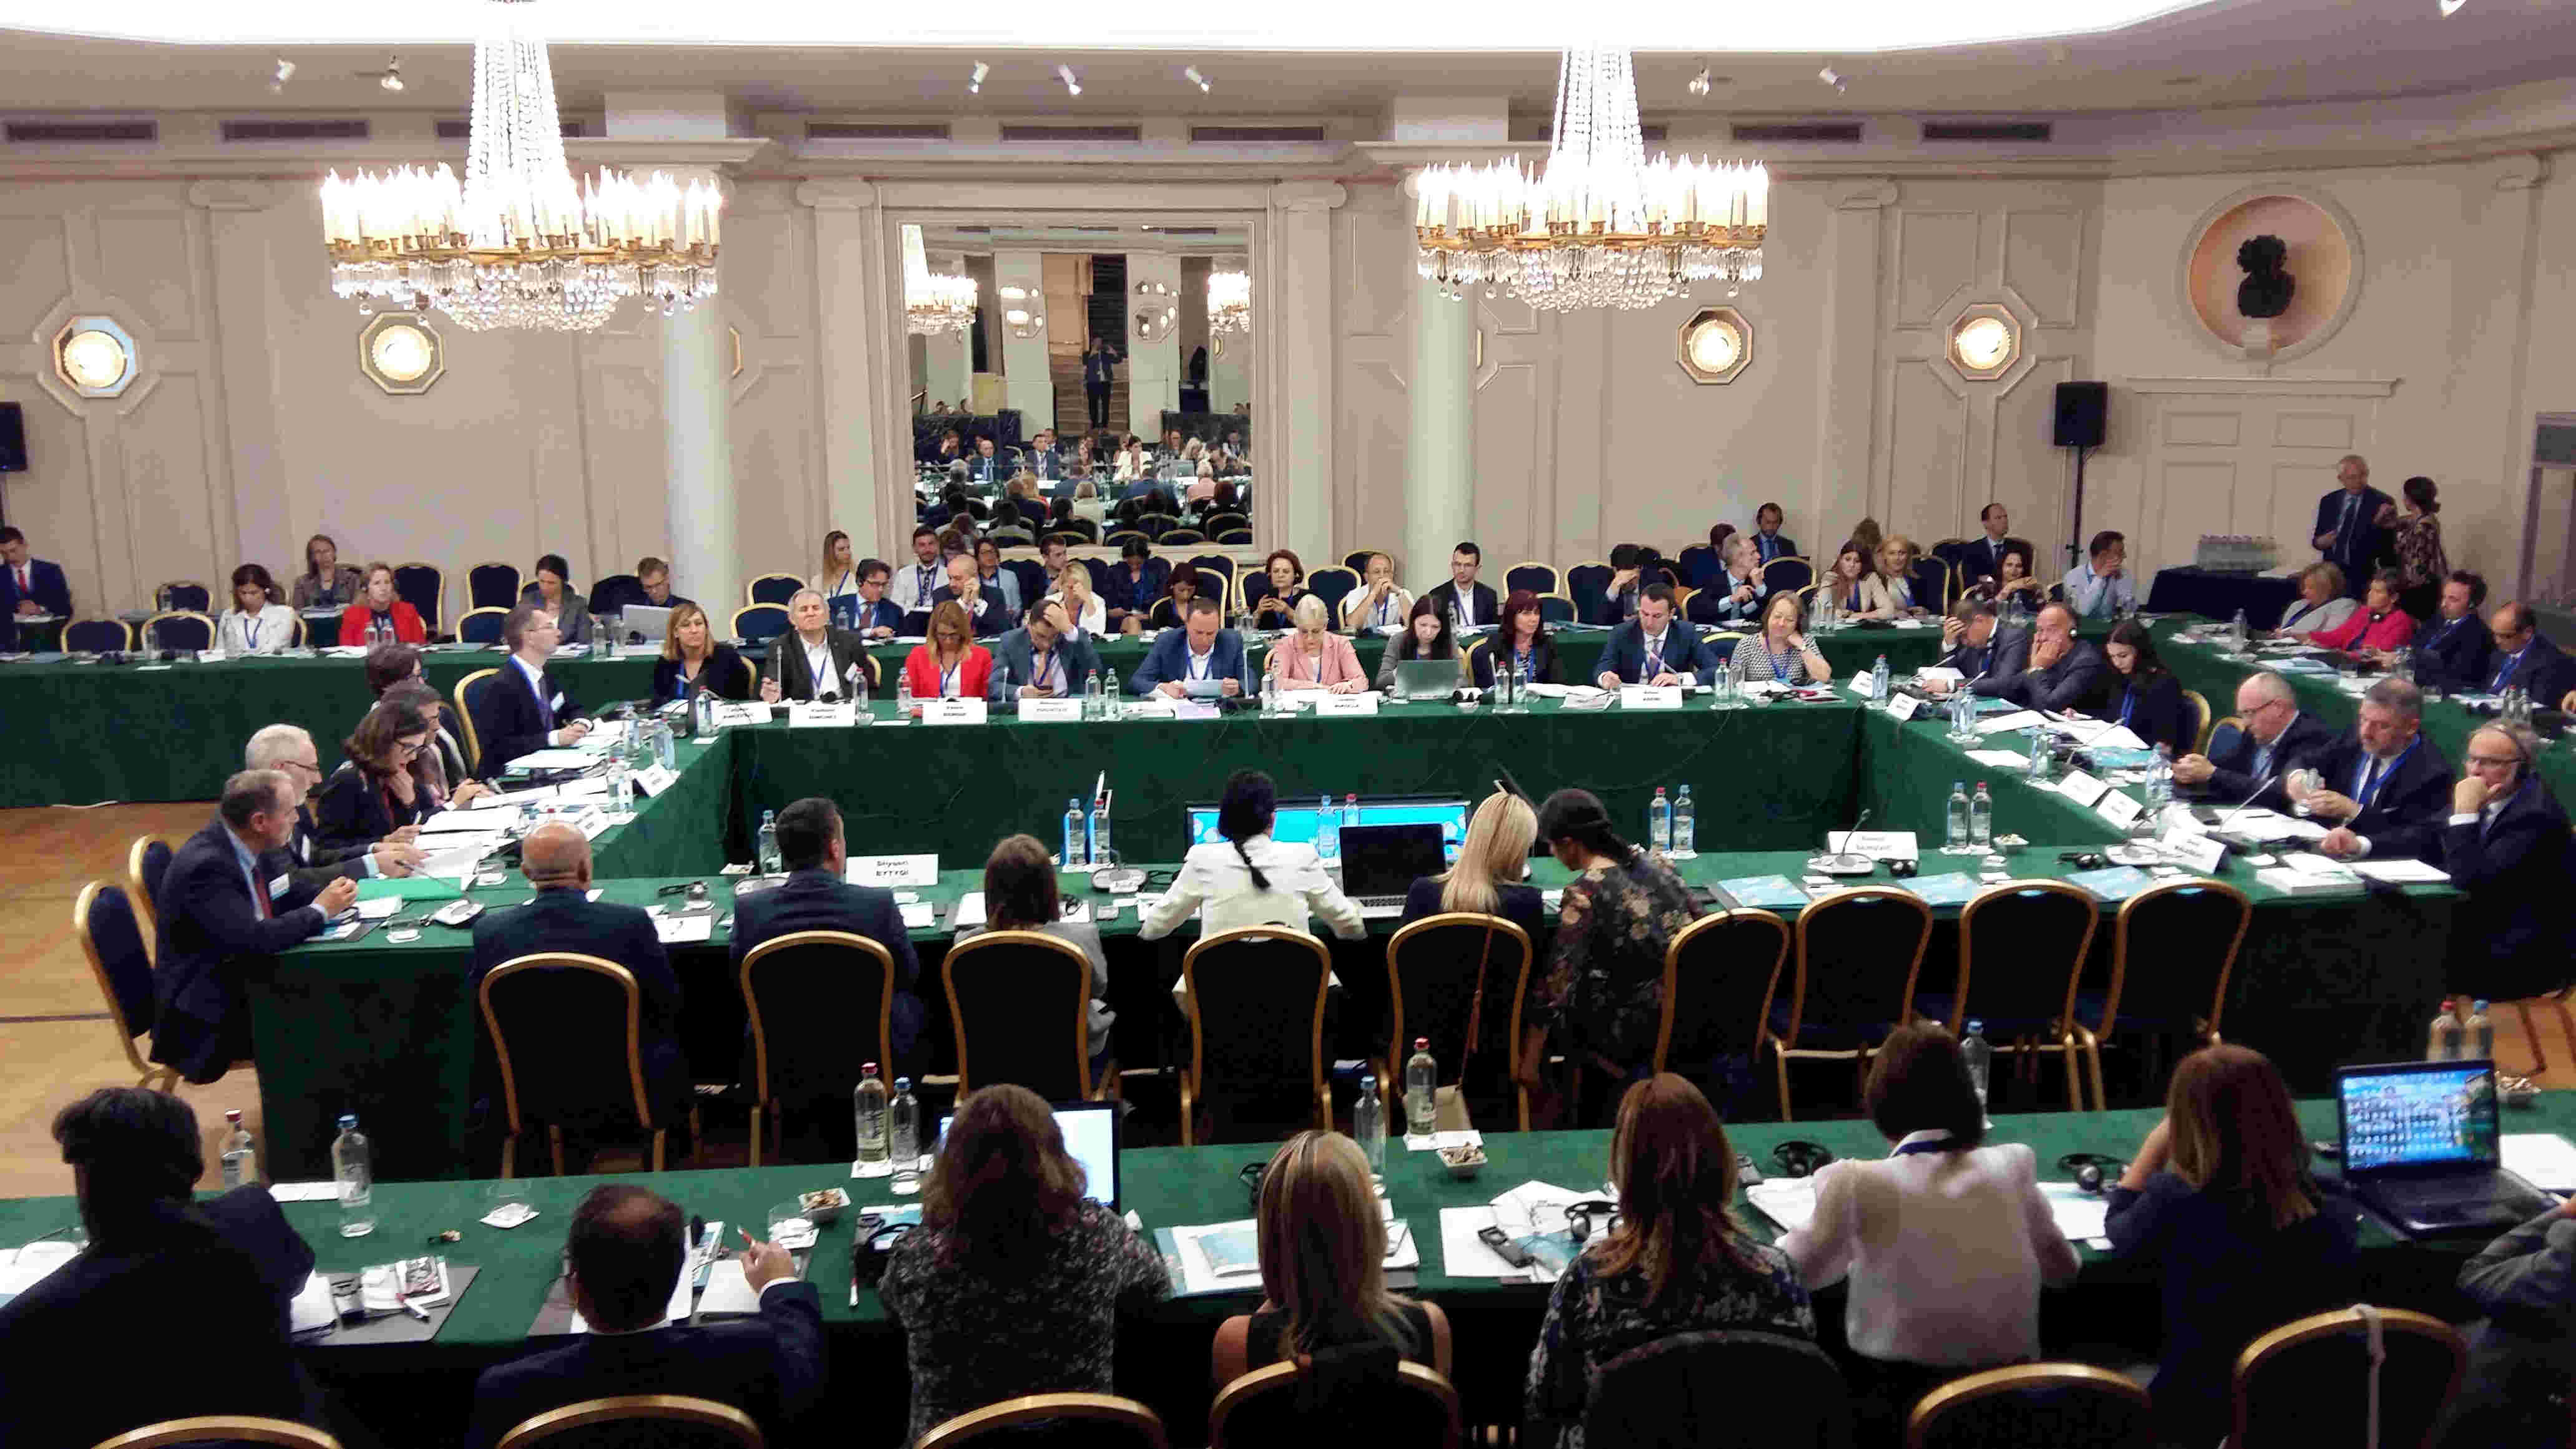 7th Ministerial Meeting of the Western-Balkan Platform on Education and Traning